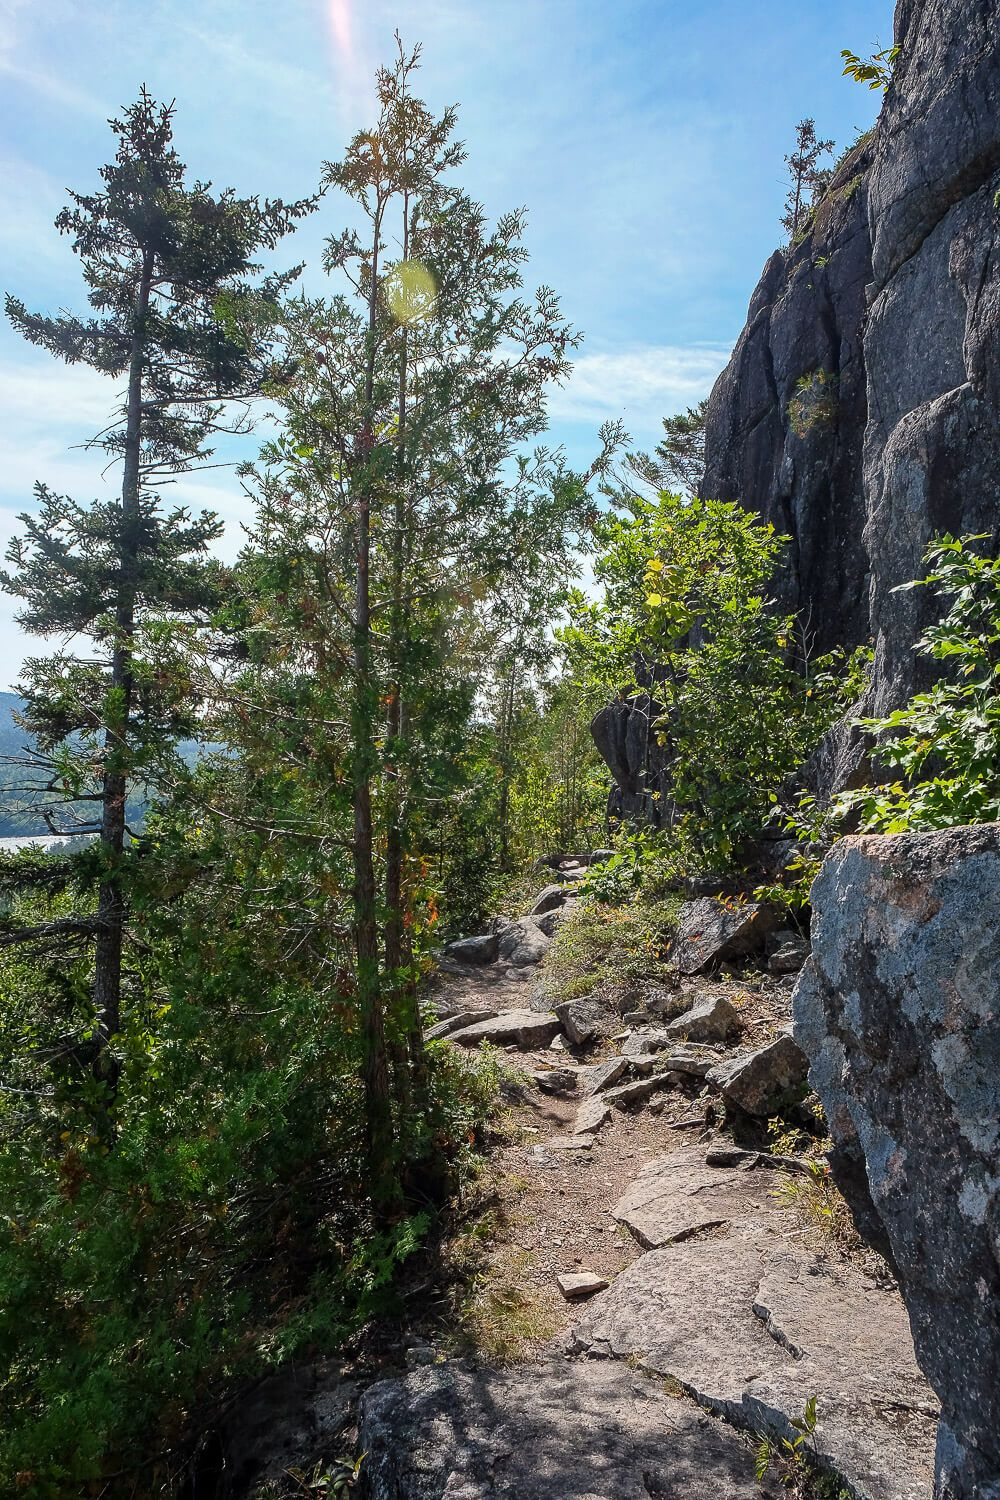 Trail Guide: Jordan Cliffs Trail